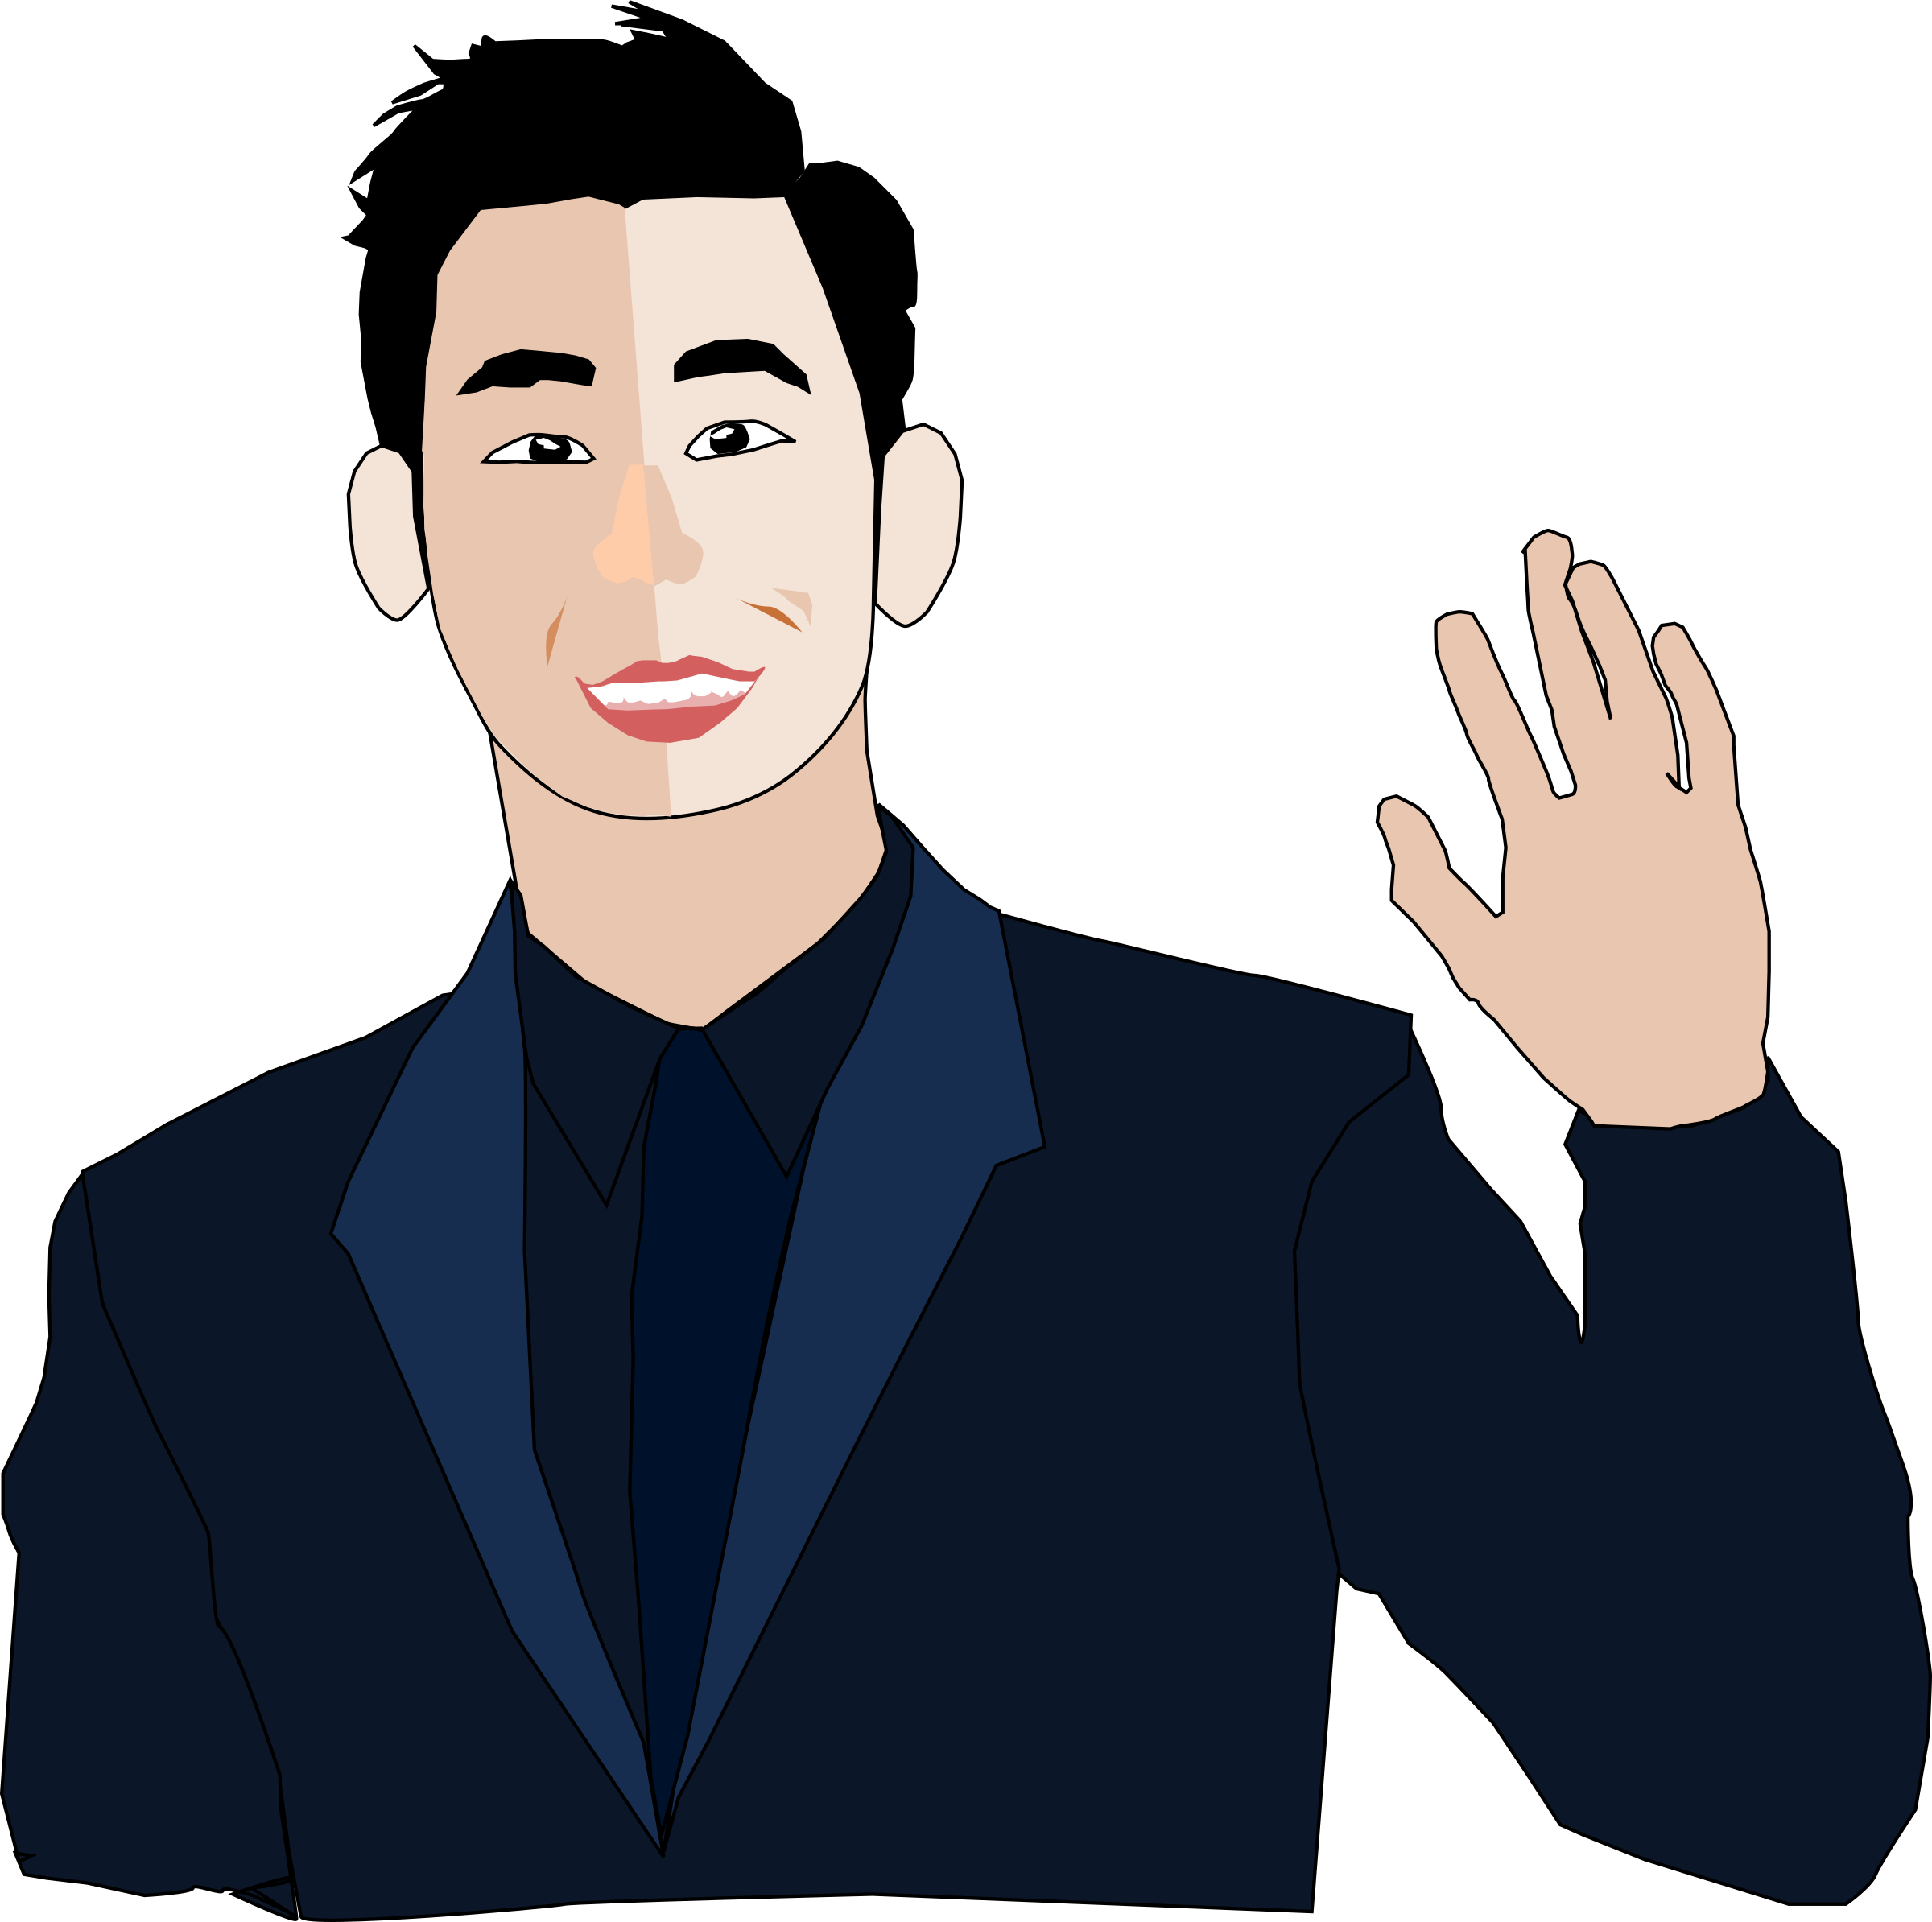 Guy clipart handsome, Guy handsome Transparent FREE for.